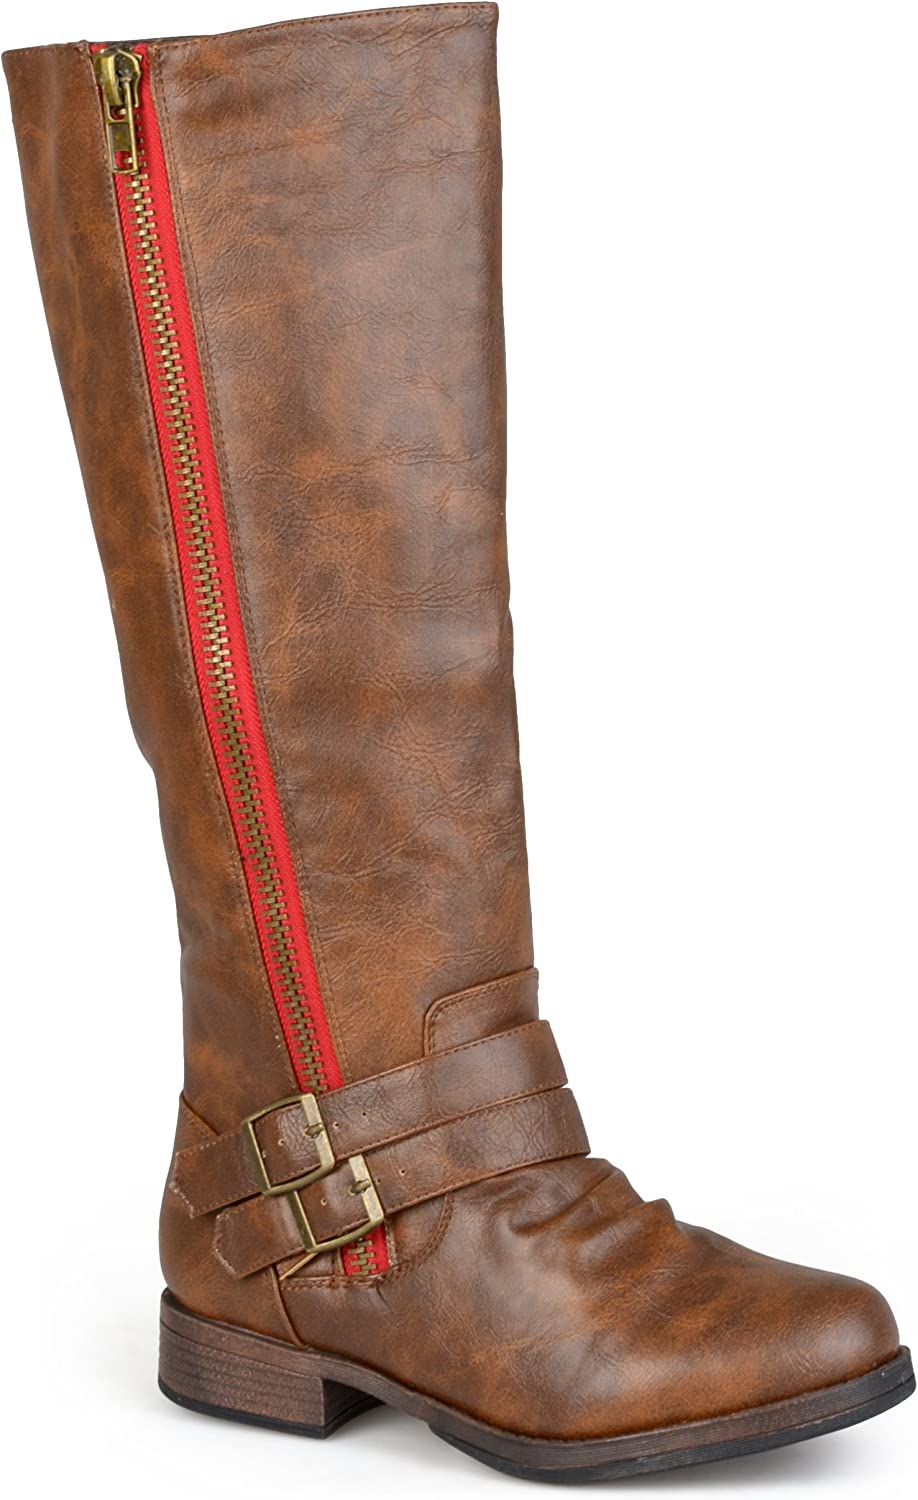 Journee Collection Womens Regular Sized and Wide-Calf Side-Zipper Buckle Knee-High Riding Boot